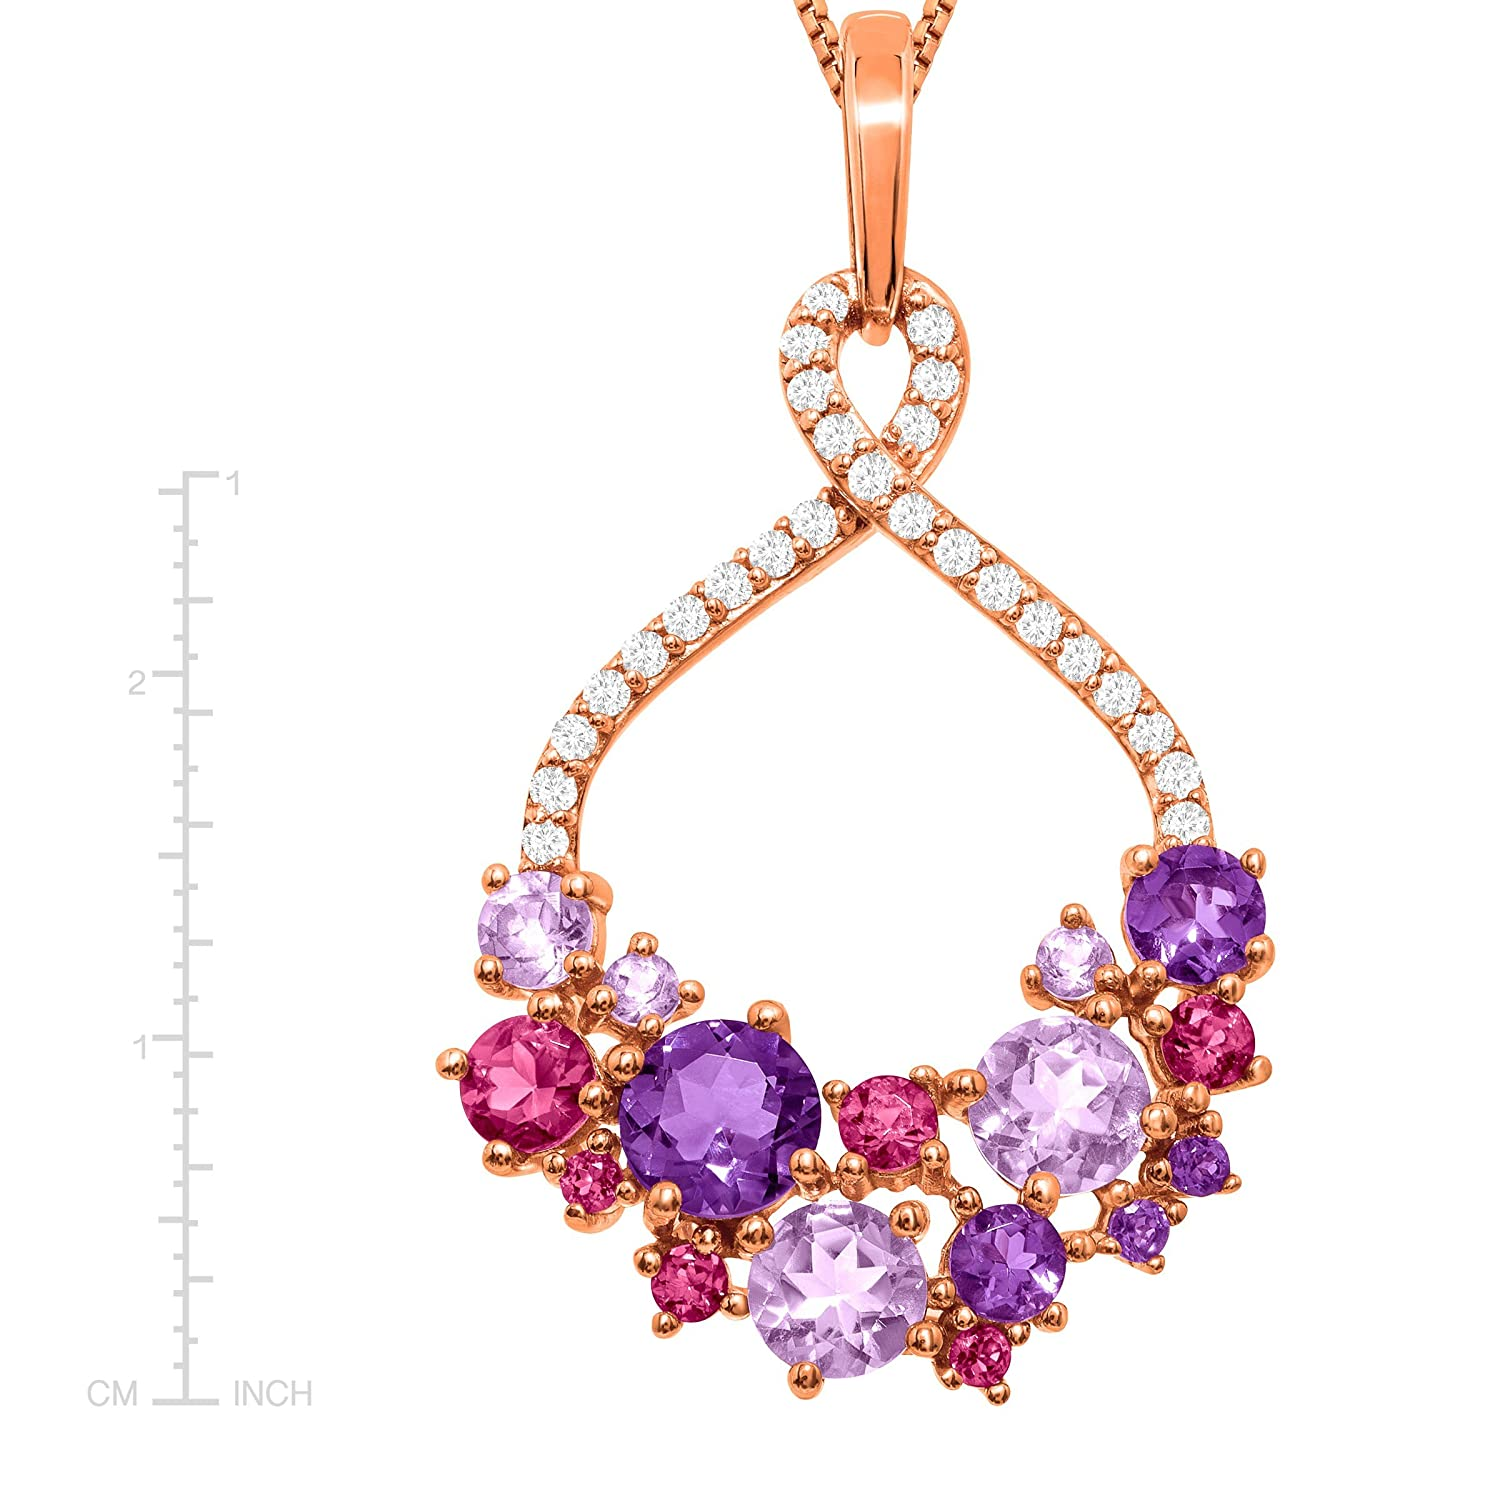 2 1//3 ct Natural Amethyst /& Pink Tourmaline Pendant Necklace in 18K Rose Gold-Plated Sterling Silver